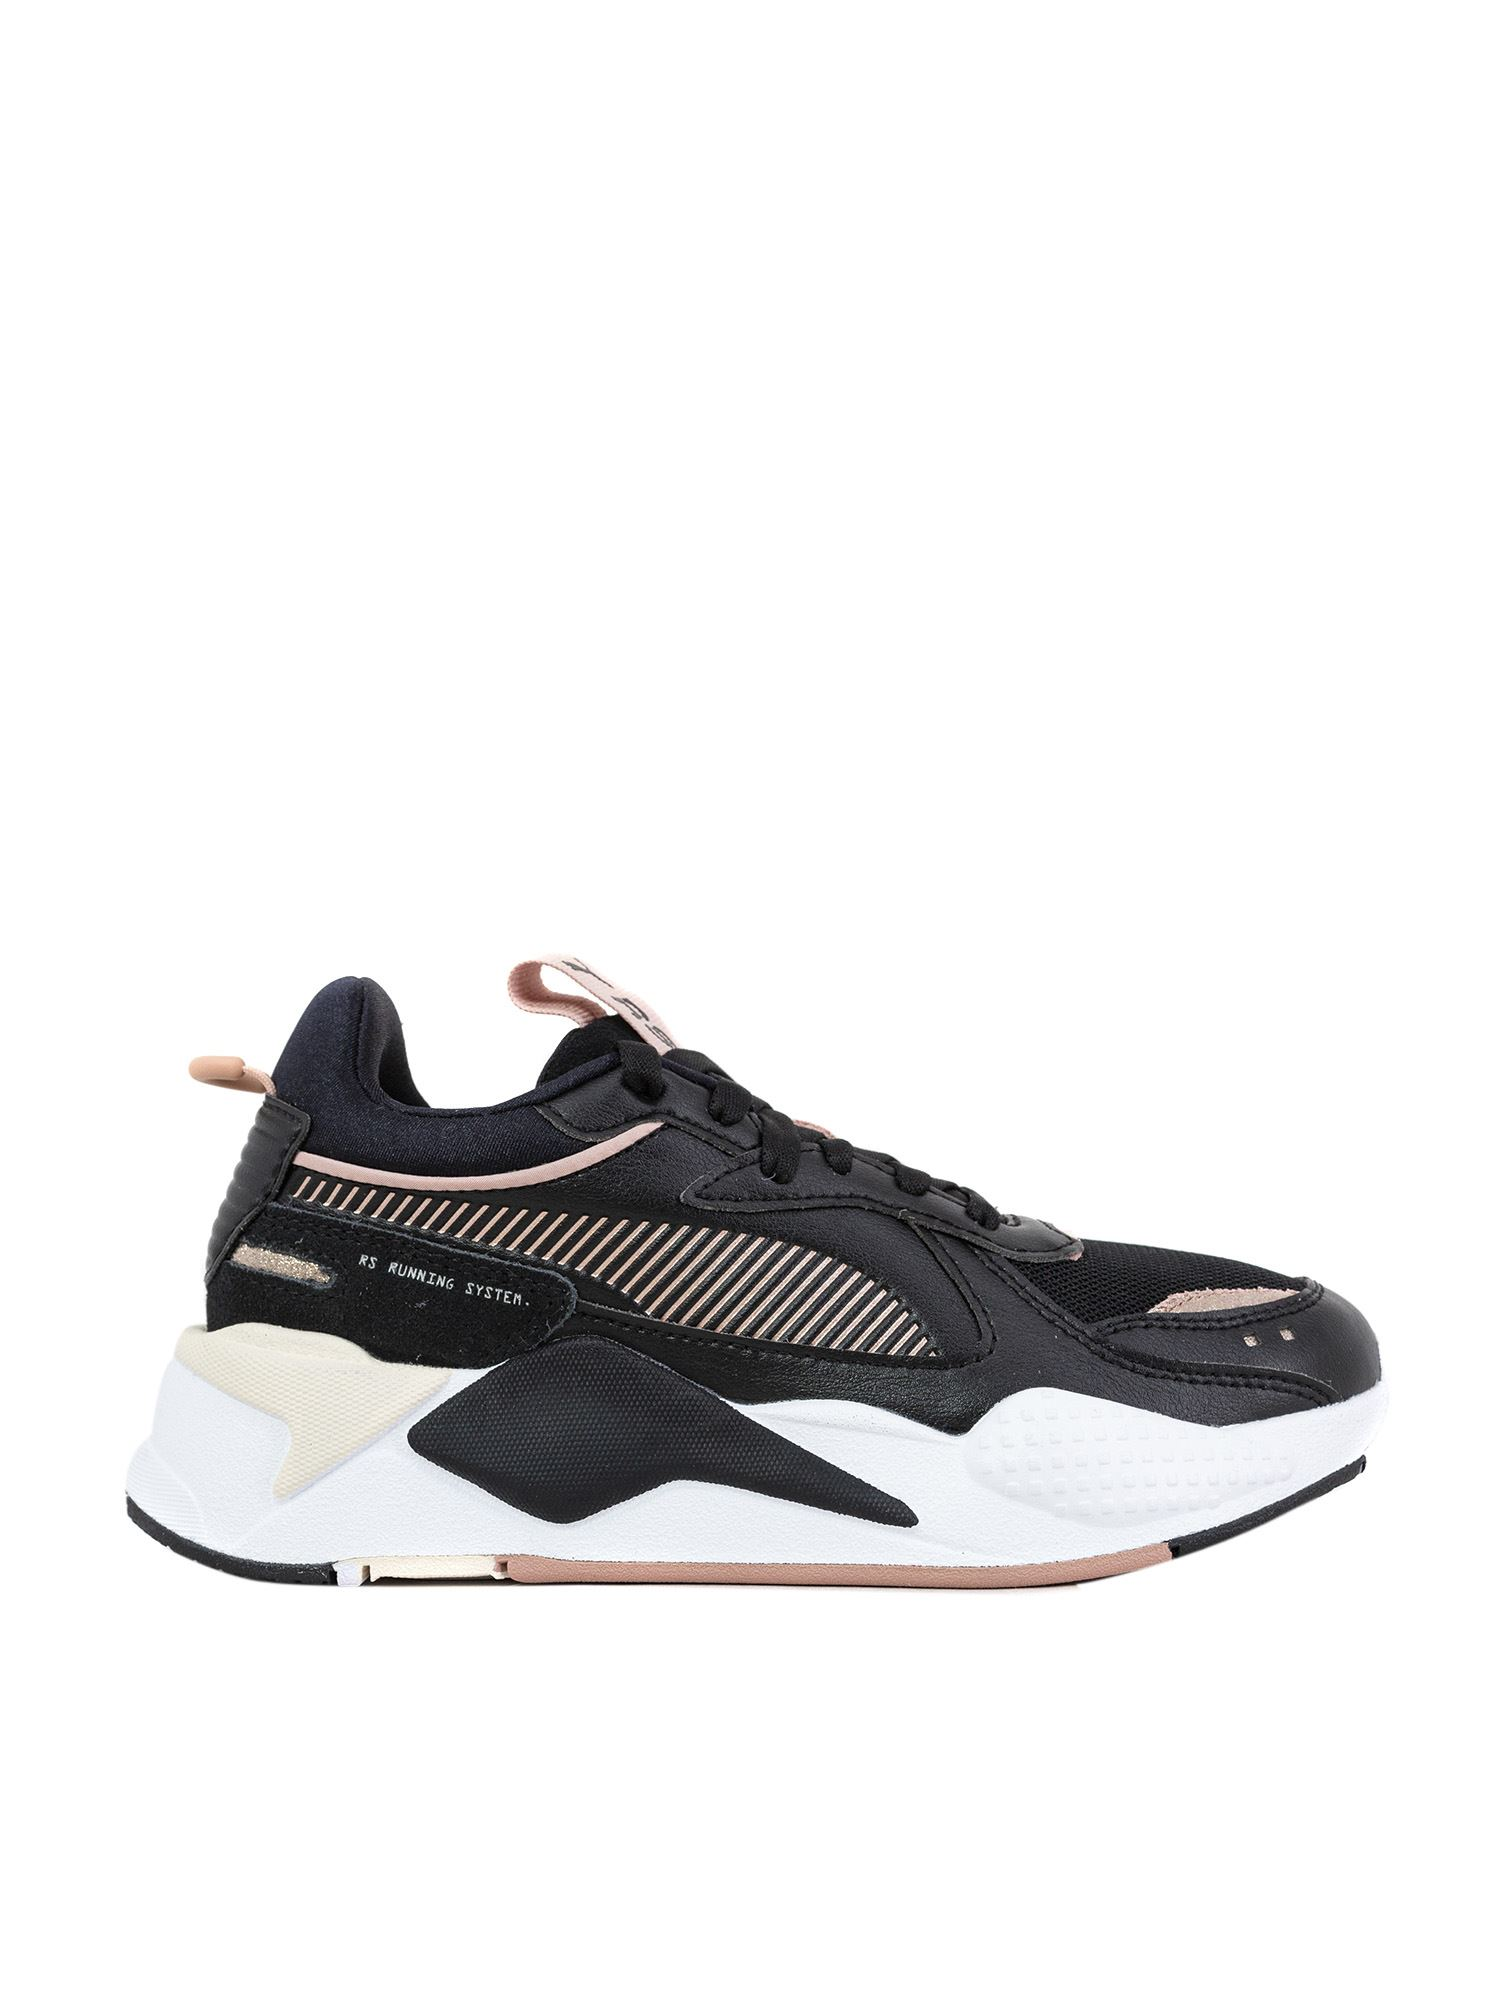 Puma RS-X MONO METAL SNEAKERS IN BLACK